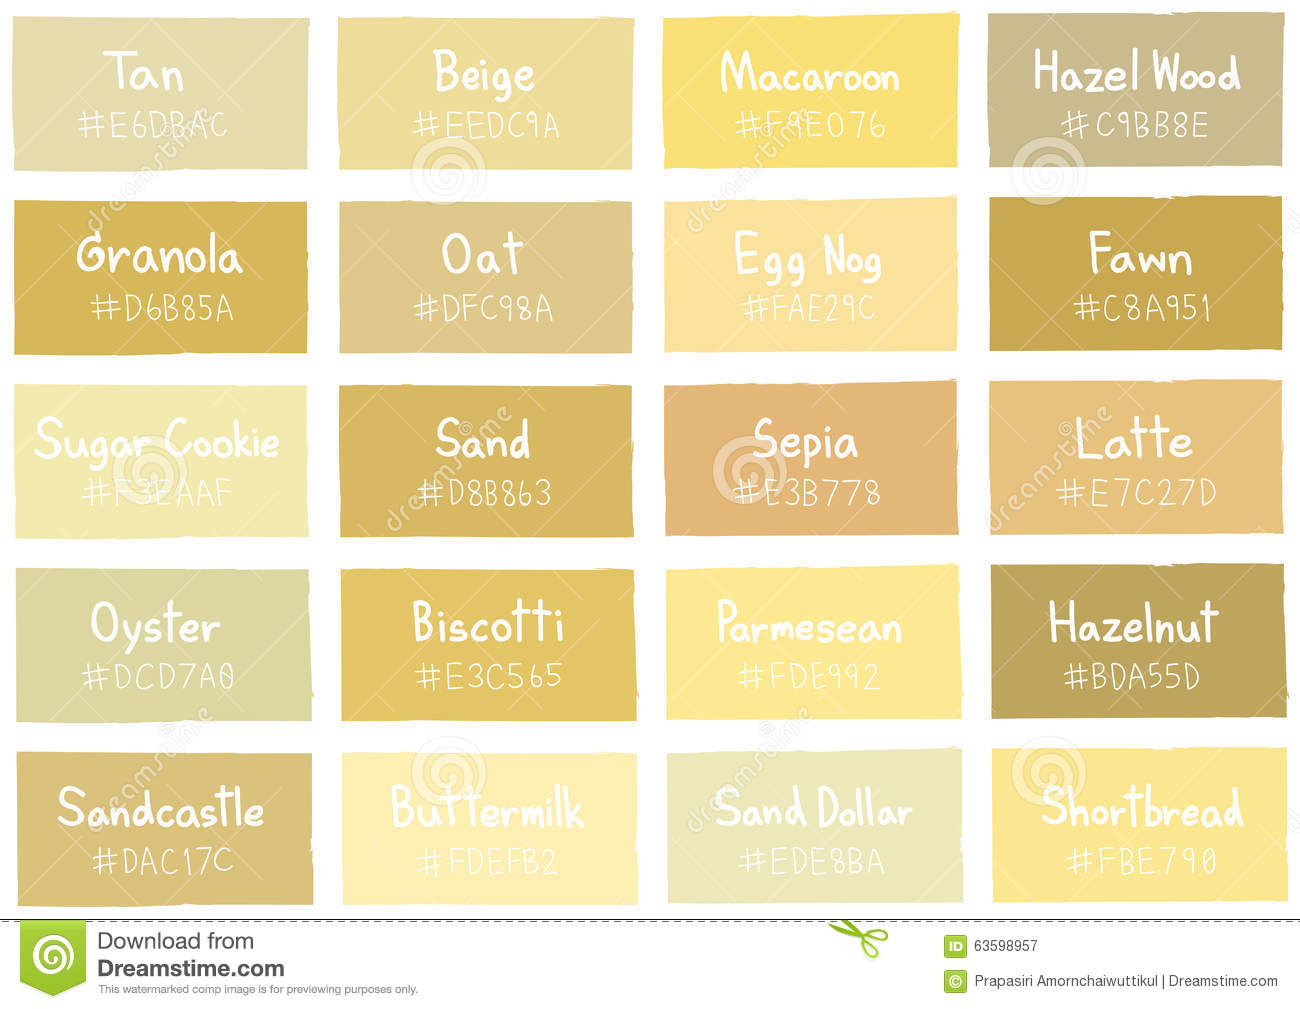 Shade Of Yellow go back gallery for shades of yellow paint names. back gallery for